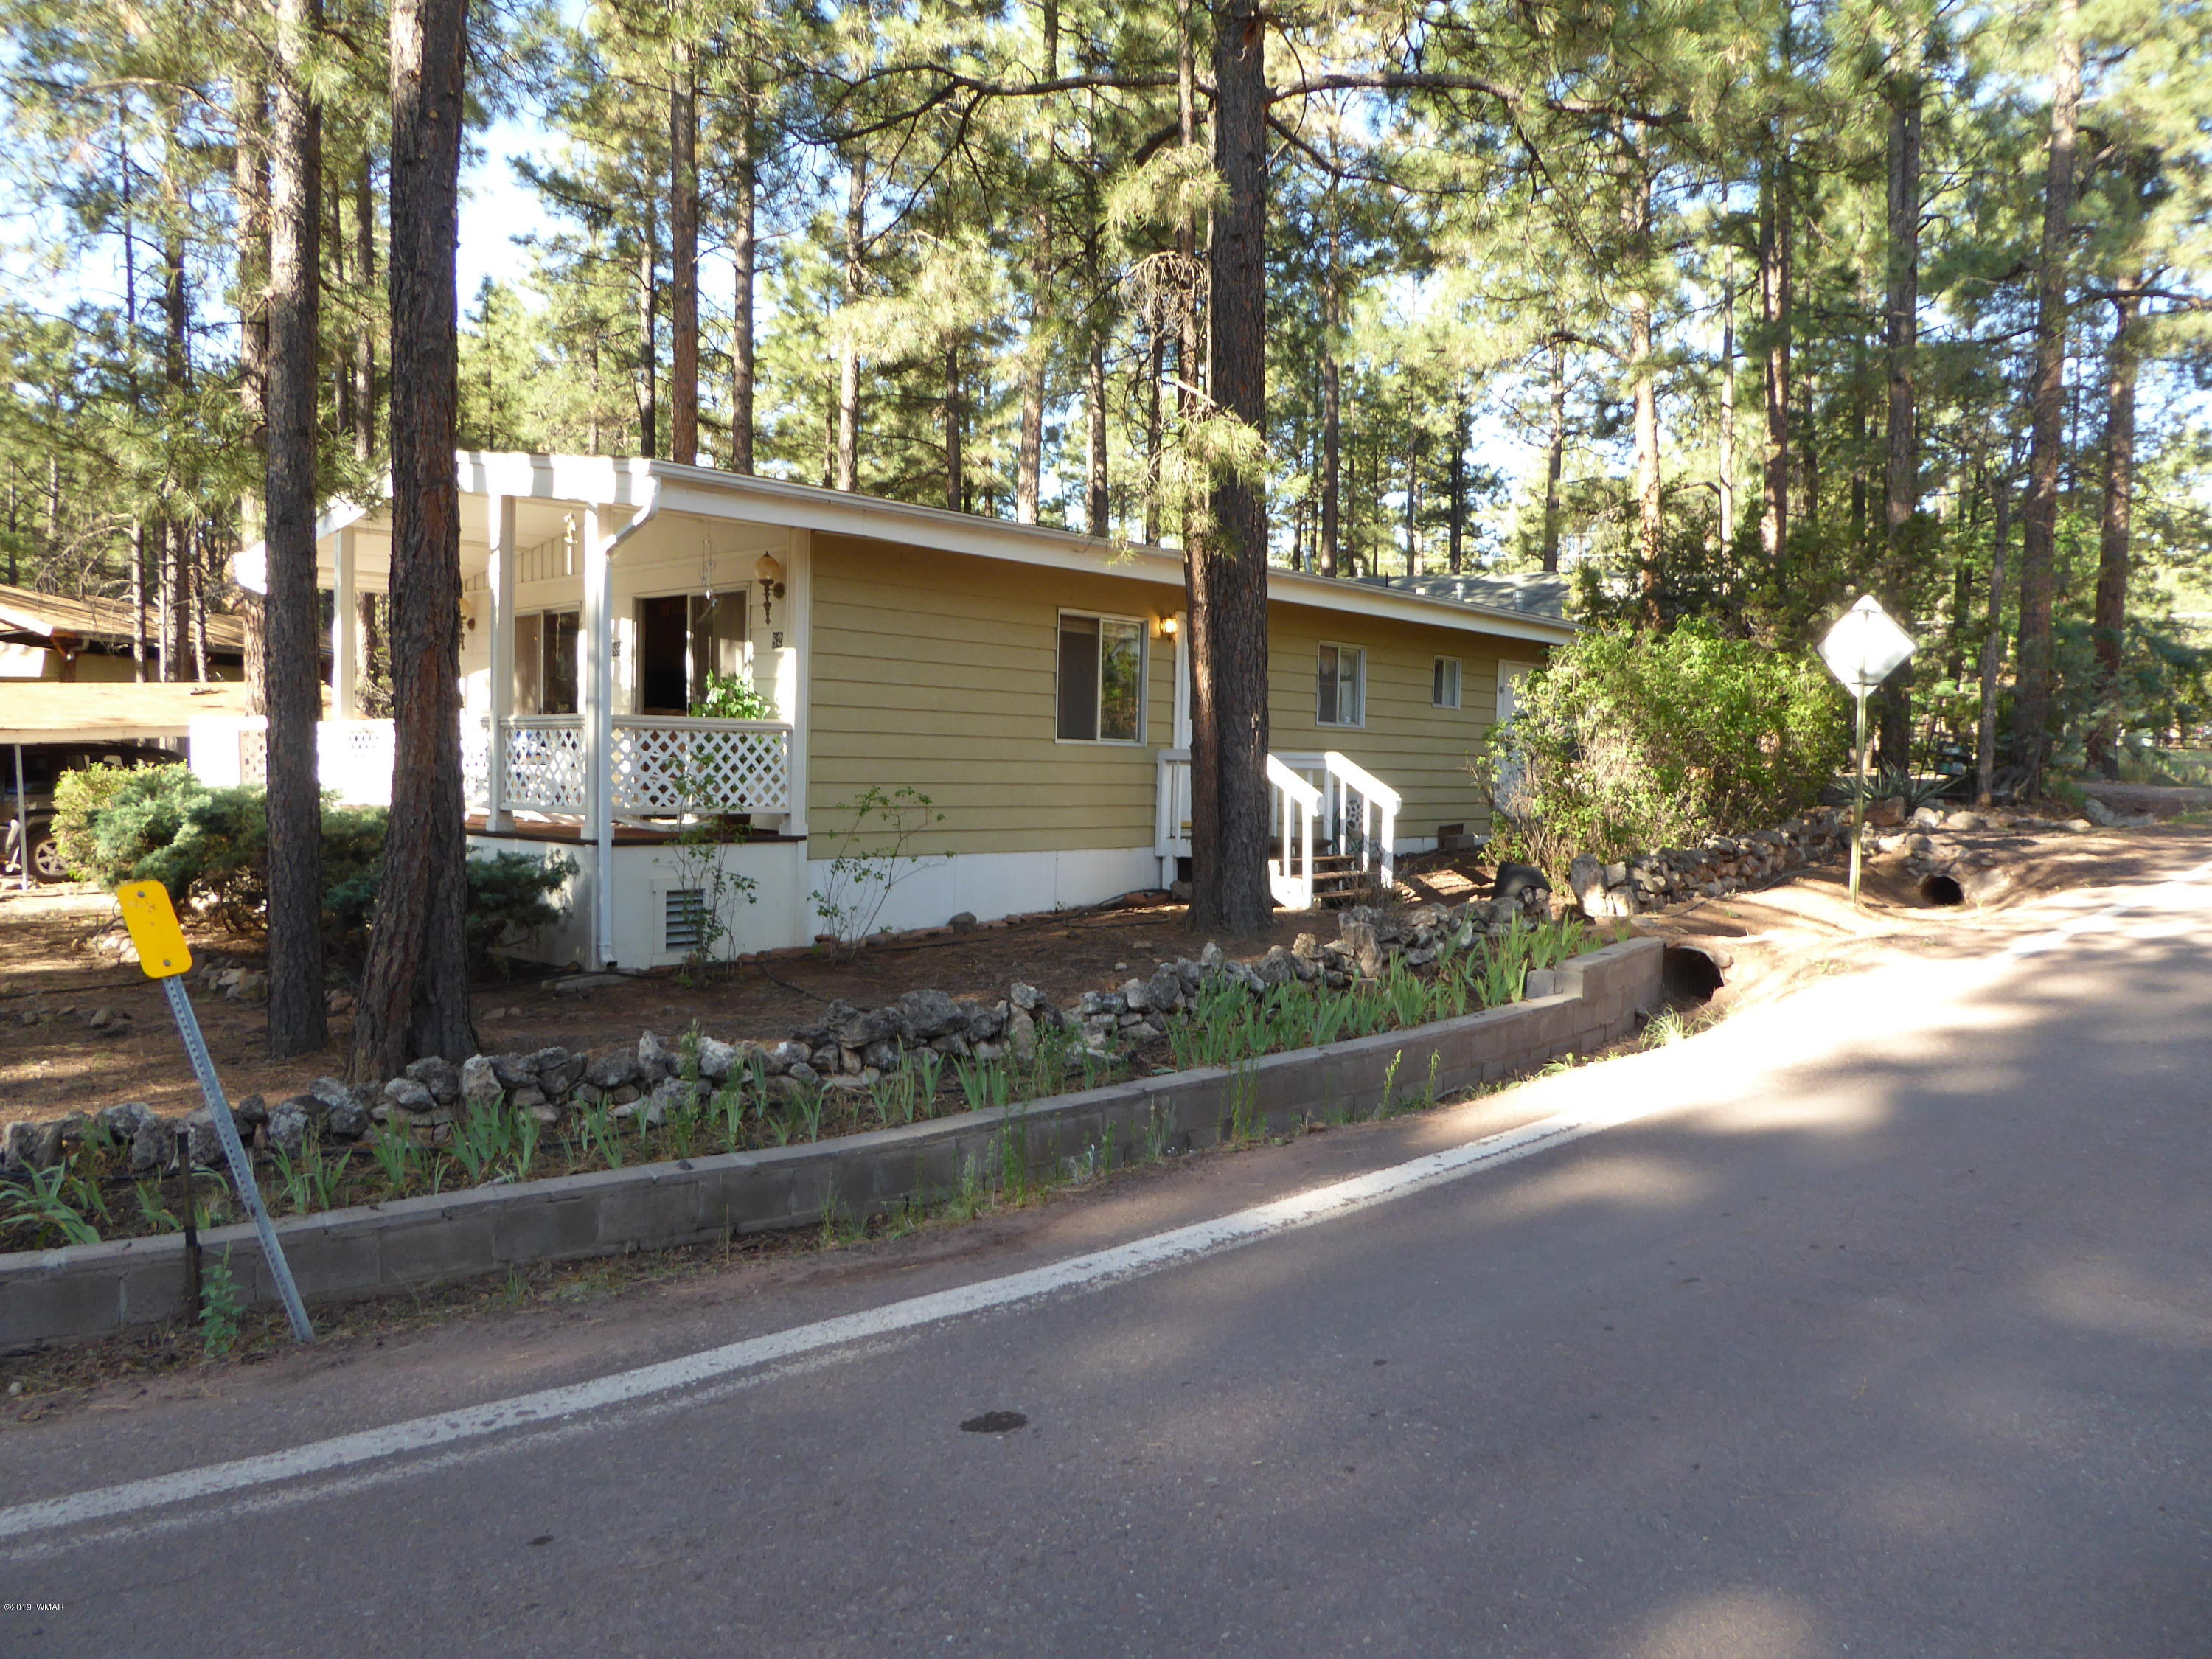 Nice double wide manufactured home nestled on a nice treed lot.enjoy the Ponderosa pines in the front yard from the covered deck. This is a great'Pack & Play Home, Enjoy all the outdoor spaces. This home is move in ready and most of the furniture stays. it has a chain link fence wrapping around backyard with storage/workshop at back of property